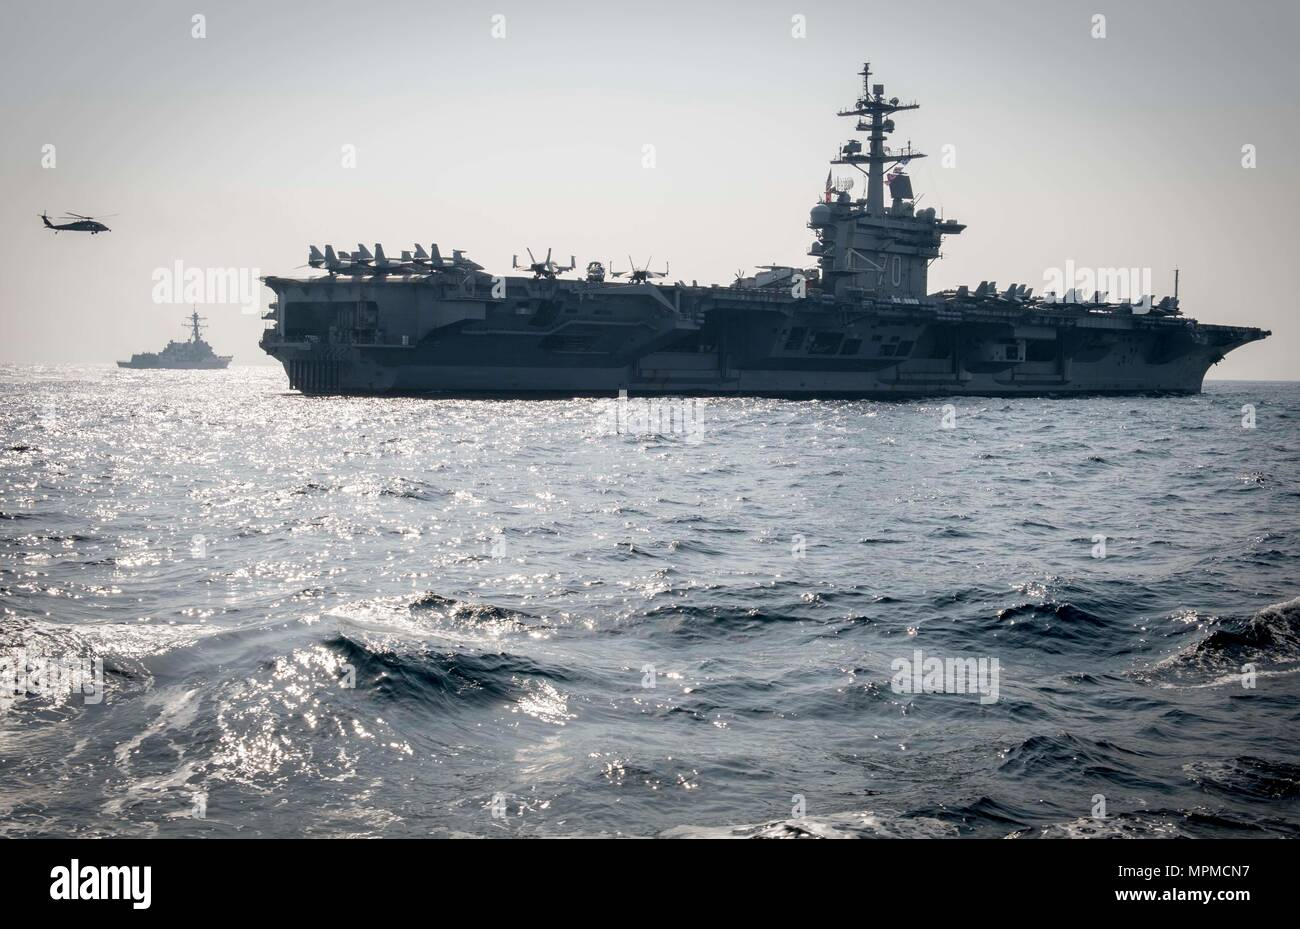 WATERS EAST OF THE KOREAN PENINSULA (March 22, 2017) The Nimitz-class aircraft carrier USS Carl Vinson (CVN 70) and the Arleigh Burke-class guided-missile destroyer USS Wayne E. Meyer (DDG 108) steam ahead of USS Stethem (DDG 63) during a surface maenuvers exercise with several other U.S. and Republic of Korea Navy ships and submarines during Foal Eagle (FE) 17. FE 17 is a series of annual training events designed to increase readiness to defend the ROK, protect the region, and maintain stability in the Korean Peninsula. (U.S. Navy photo by Mass Communication Specialist 2nd Class Ryan Harper/  - Stock Image